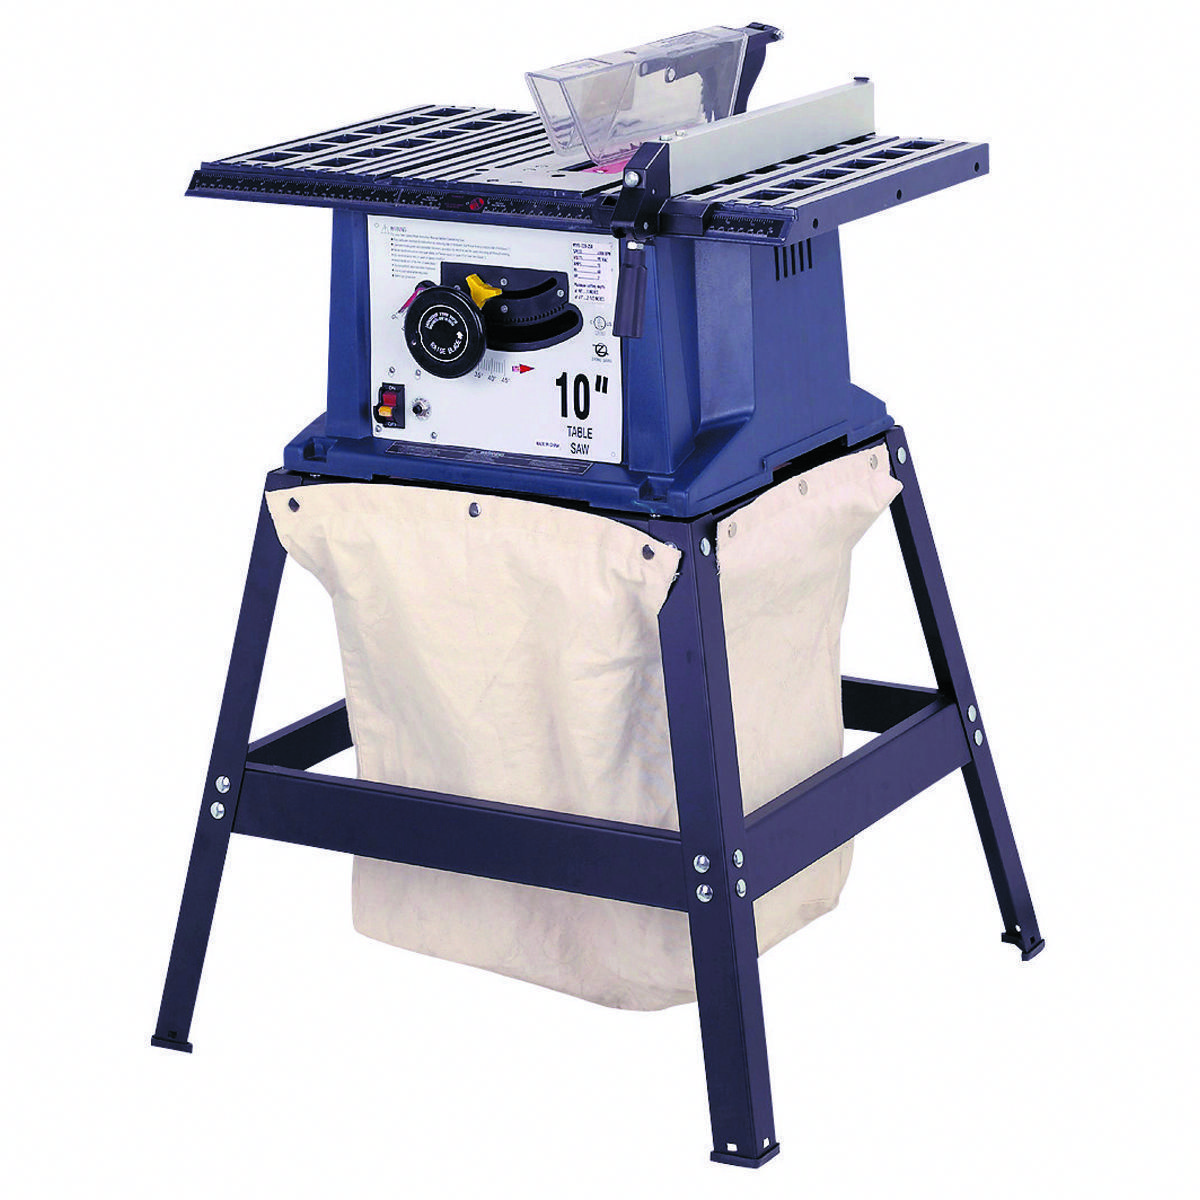 Scroll Saw Projects In 2020 Portable Table Saw Table Saw Diy Table Saw